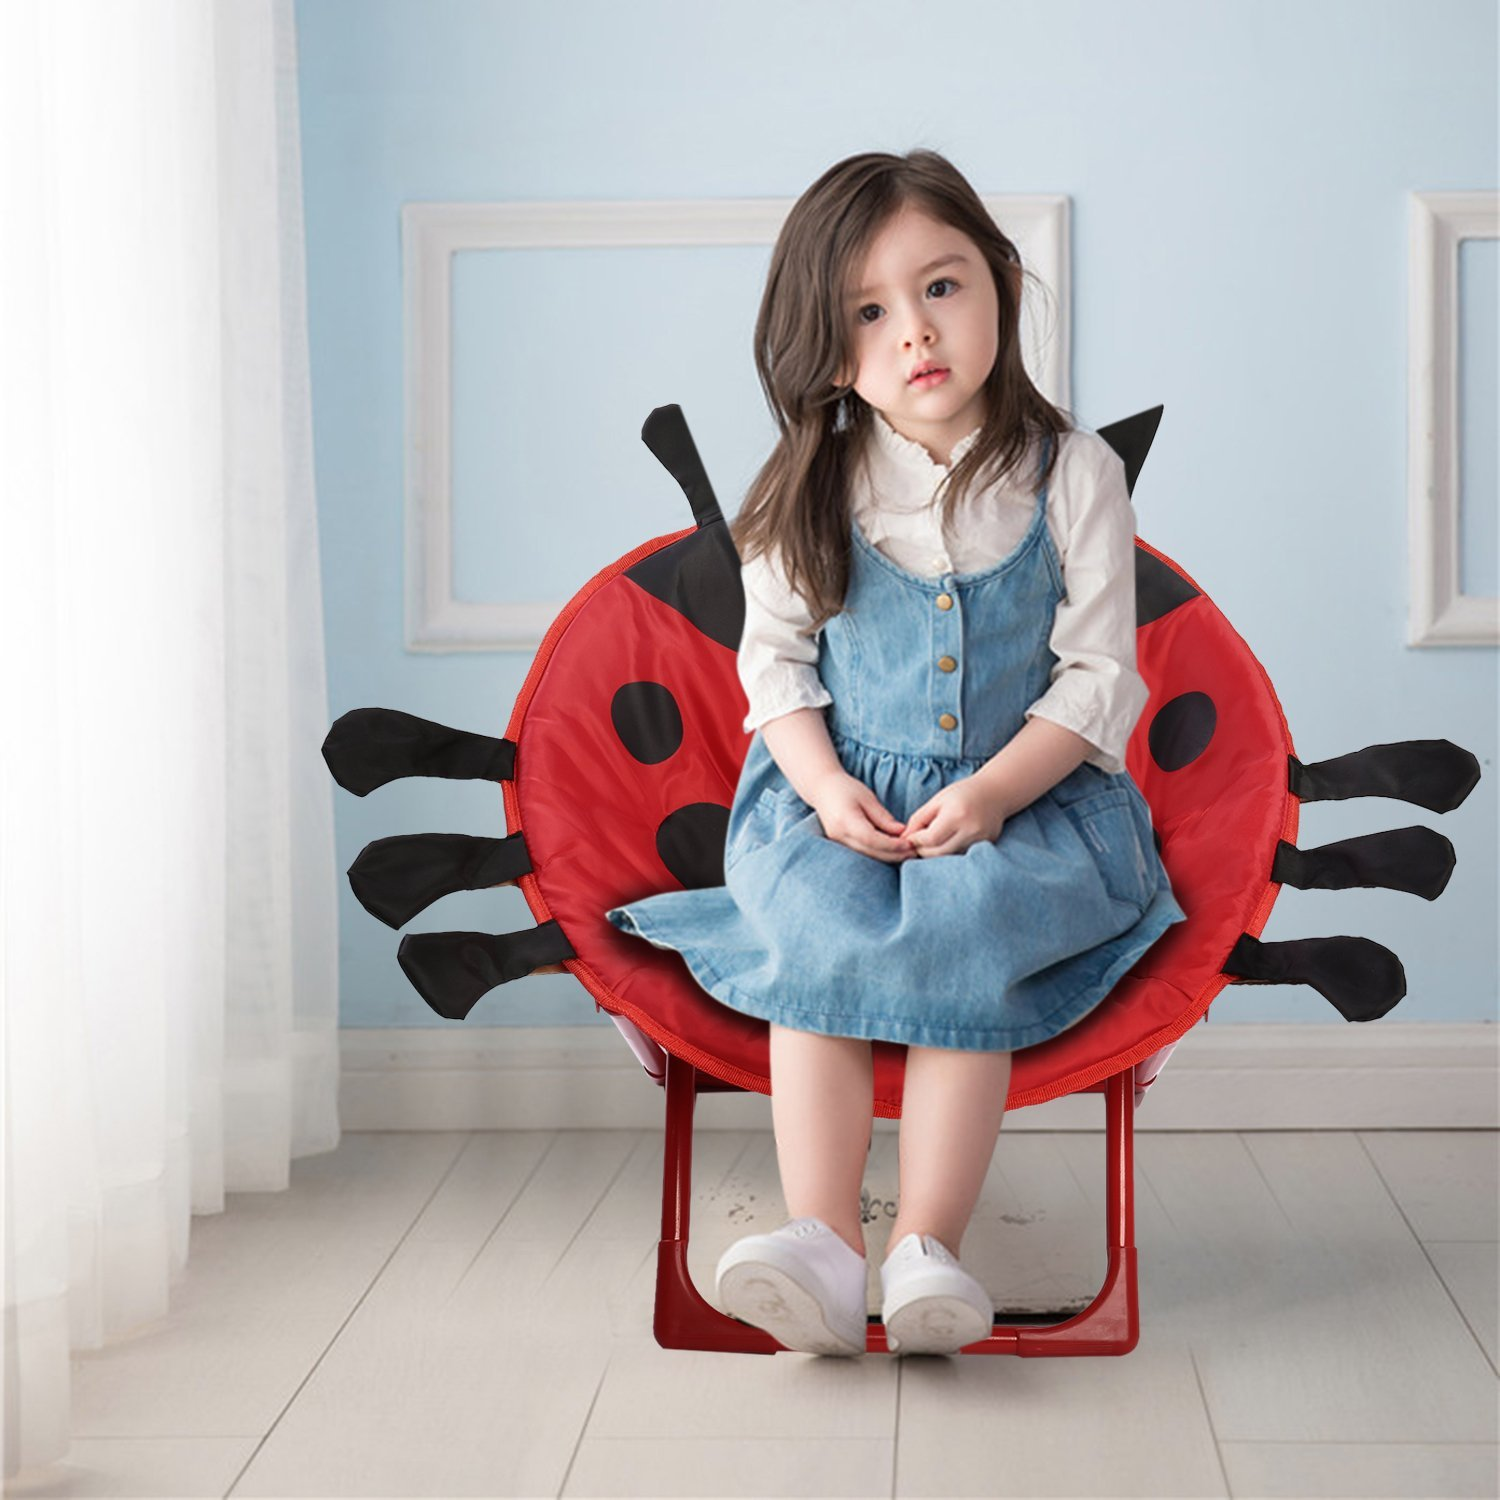 Prime Beetle Chair Outad Folding Chairs Foldable Children Kids Theyellowbook Wood Chair Design Ideas Theyellowbookinfo